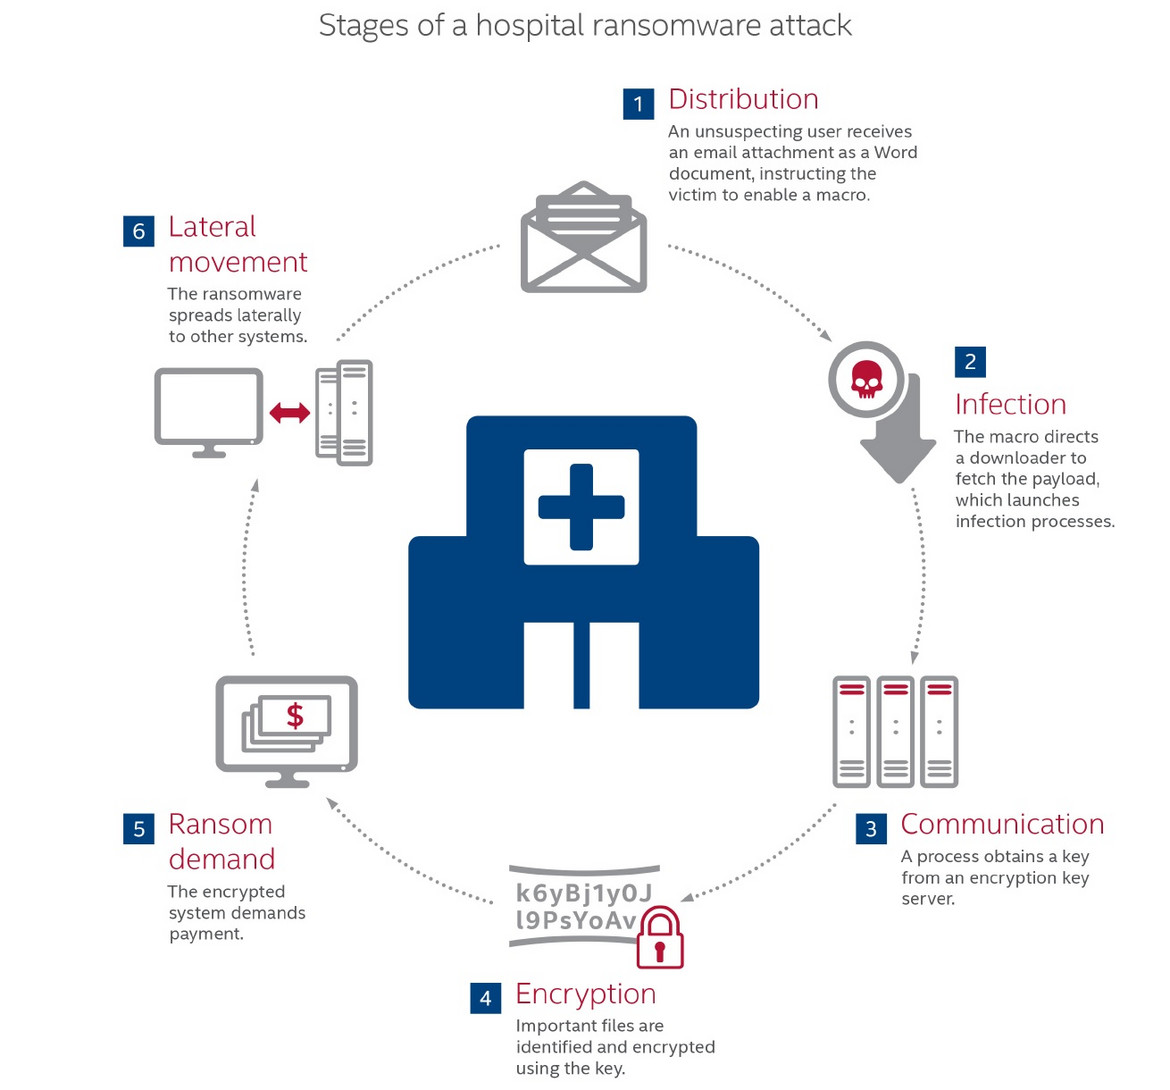 Stages of a hospital ransomware attack